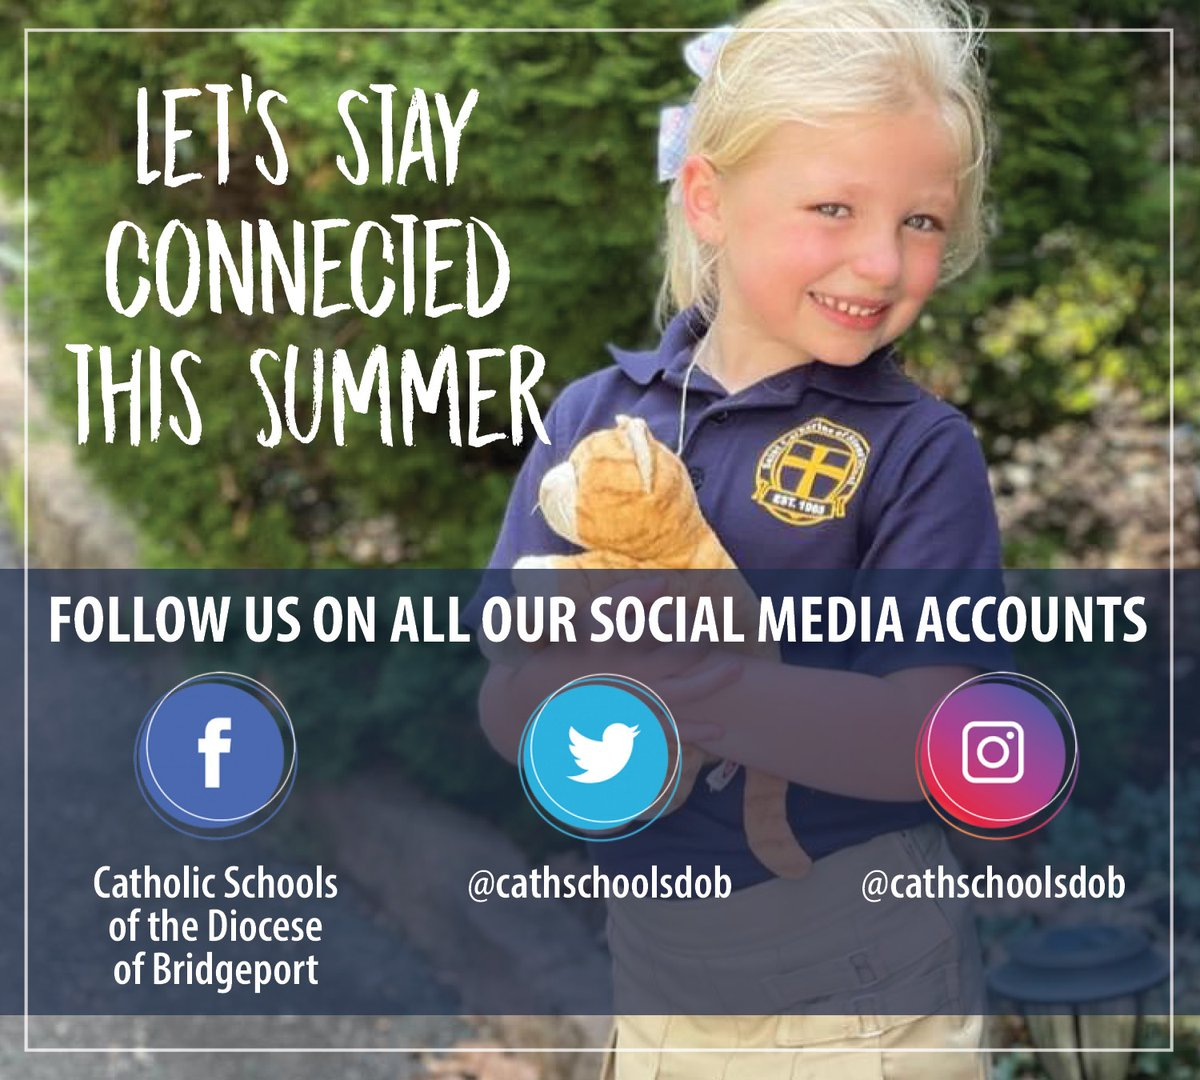 test Twitter Media - Summer break is here, but we still have so much to share! Follow us on all our social media accounts to stay connected and in the know about all 25 of our schools! @Diobpt @BptSup #StayConnected @CathSchoolNews https://t.co/jt6B1SmlIA